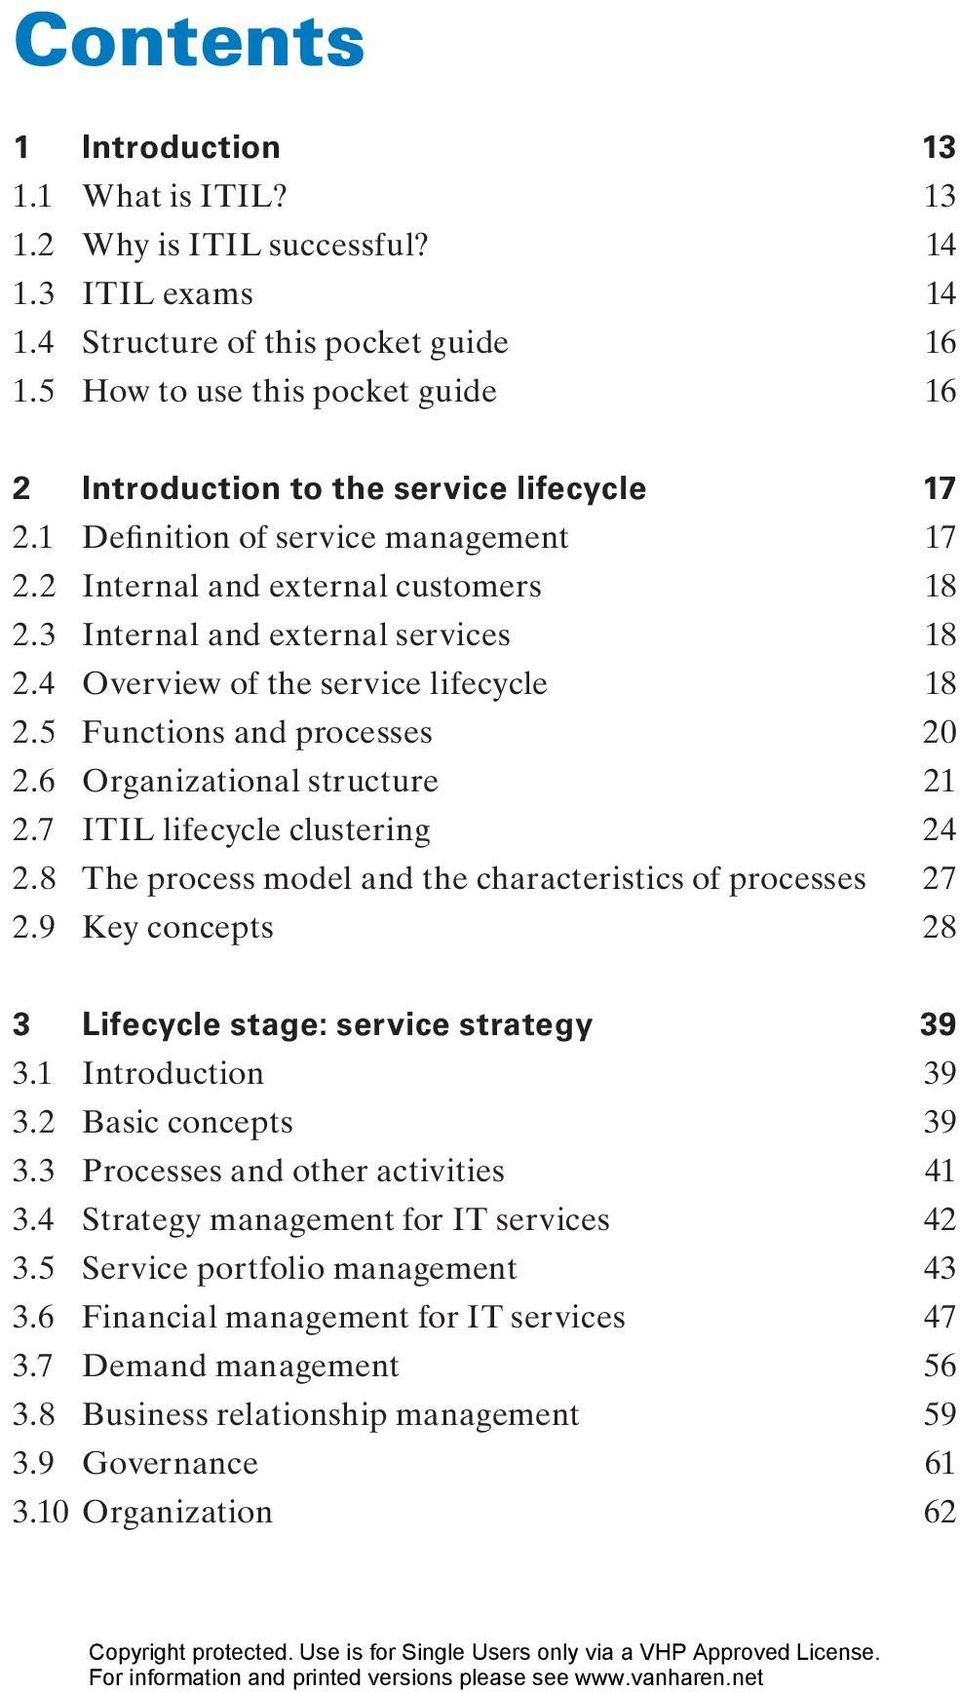 4 Overview of the service lifecycle 18 2.5 Functions and processes 20 2.6 Organizational structure 21 2.7 ITIL lifecycle clustering 24 2.8 The process model and the characteristics of processes 27 2.